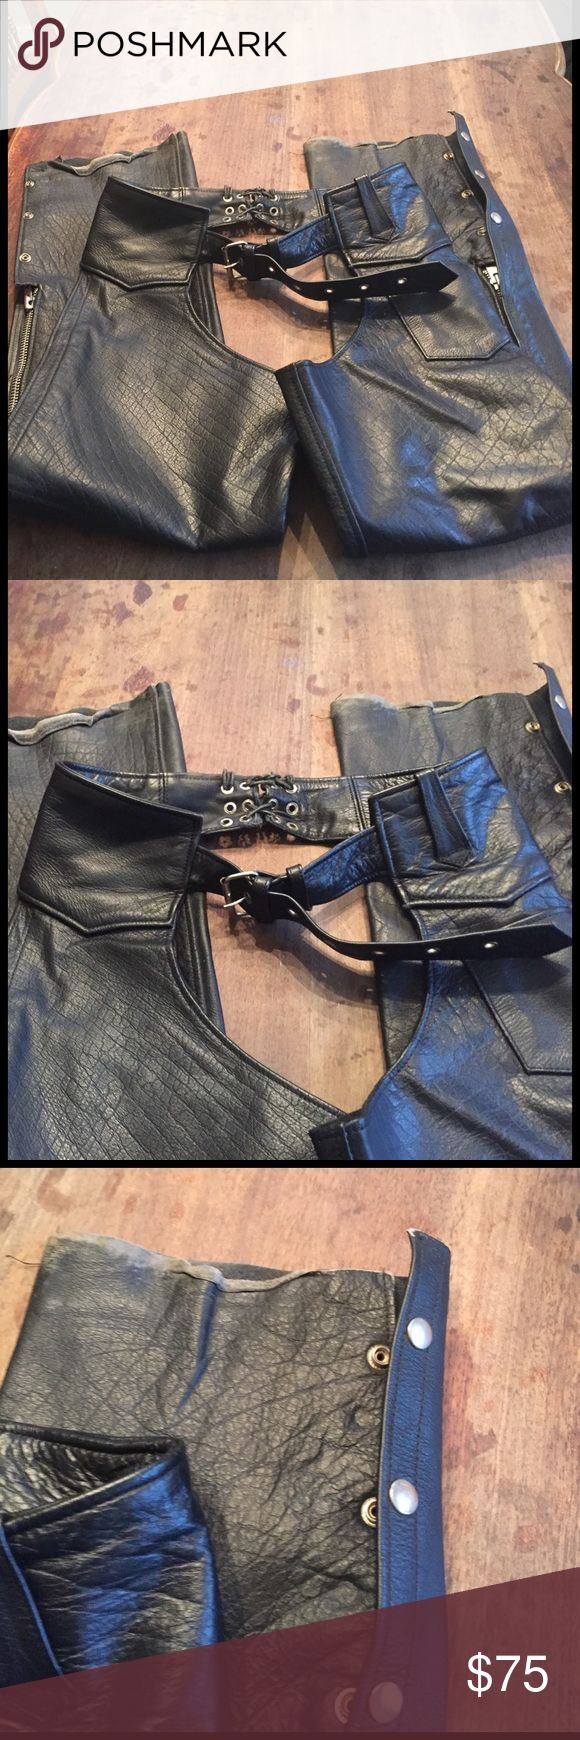 Vintage Motorcycle Chaps interstate leather Used chaps with character great addition to keep safe.   Fits like a small but could be xs or medium as the belt has many adjustments.  NOT Harley Davidson Harley-Davidson Jackets & Coats